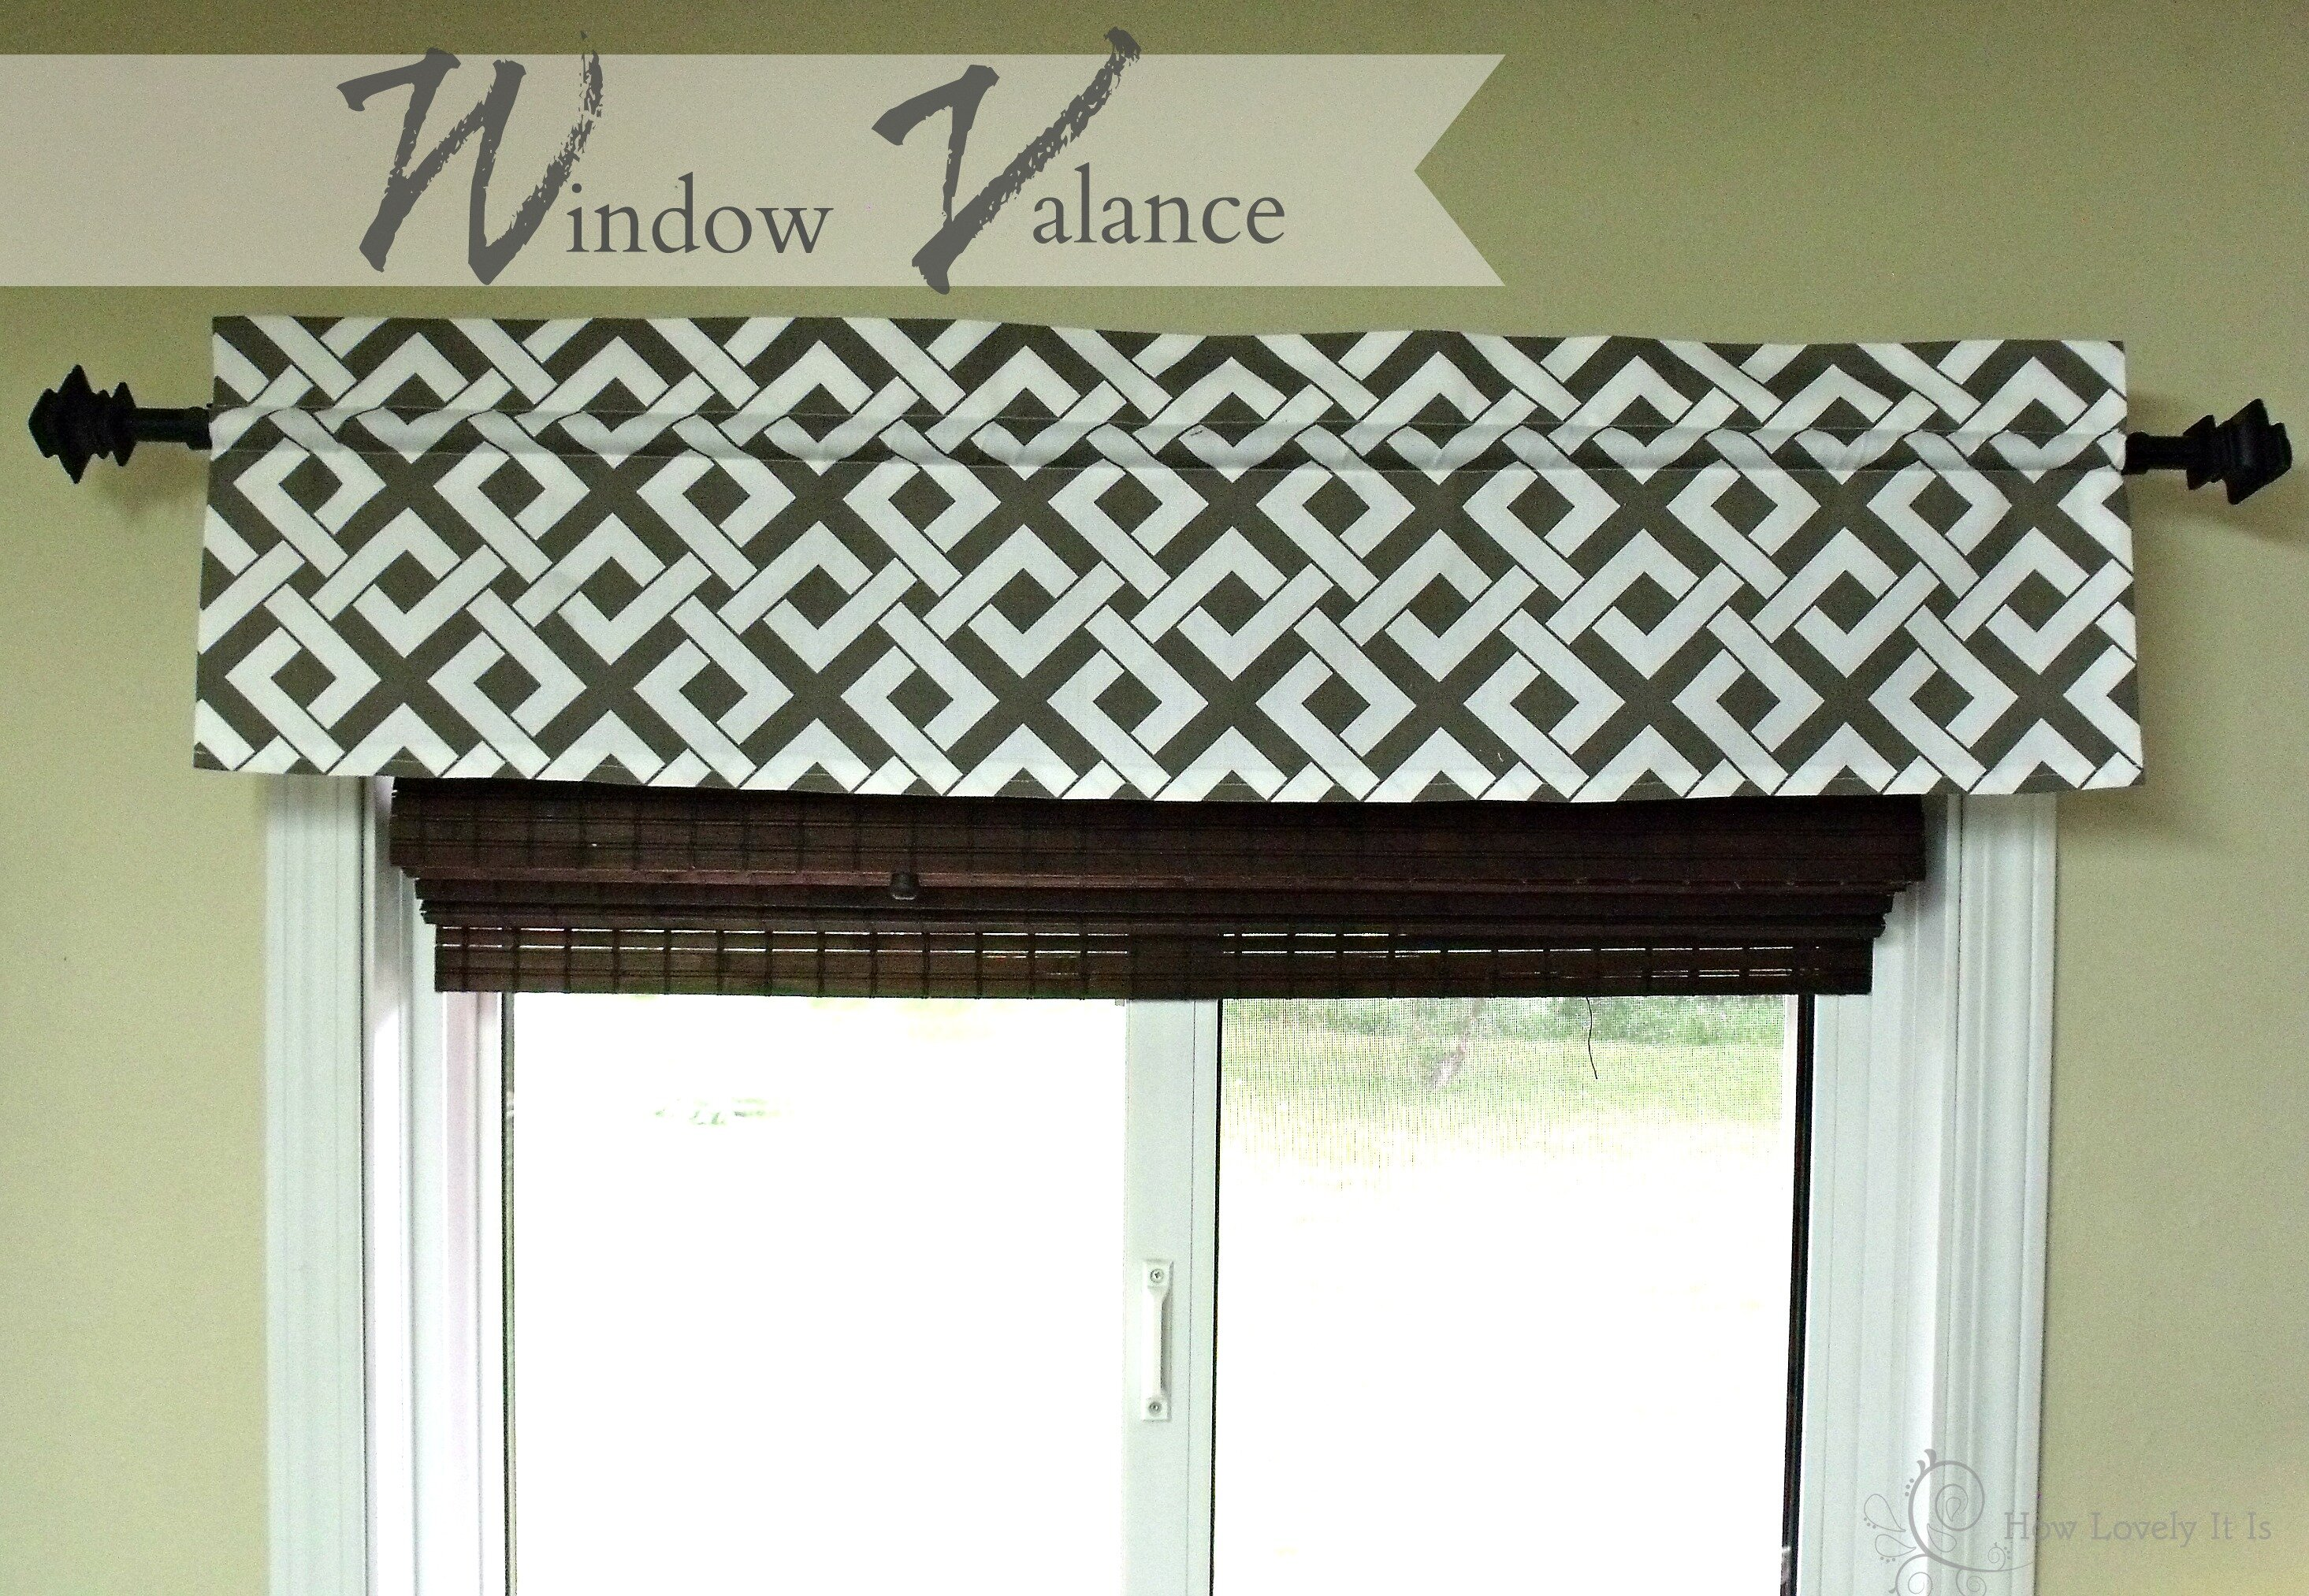 Living Room Valances | Valances for Kitchen Windows | Valance Window Treatments